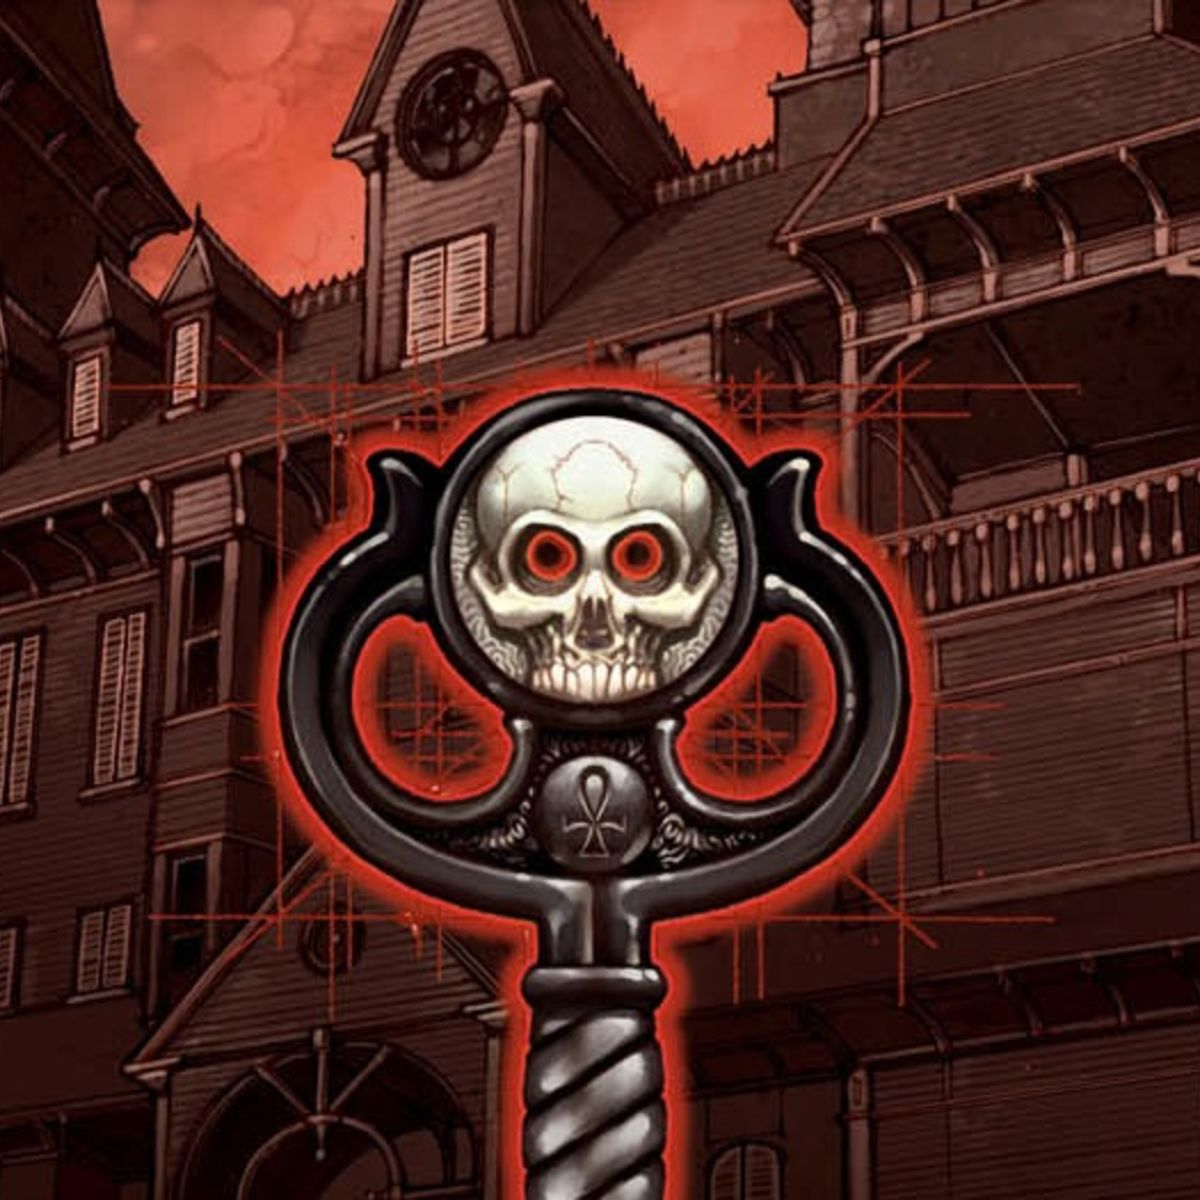 locke-key-1-welcome-to-lovecraft-hc-w-logos.jpg